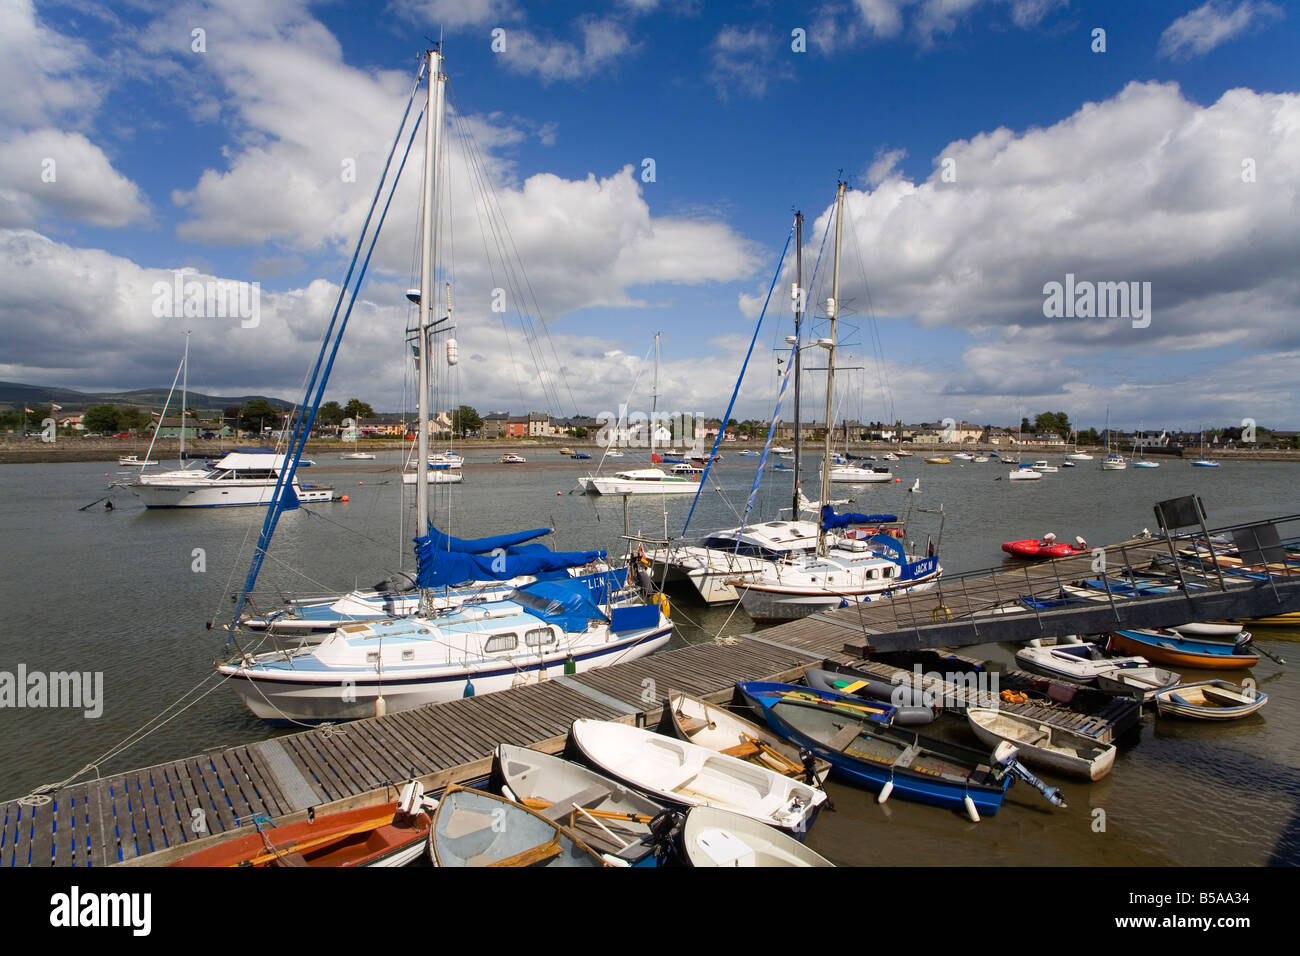 Dungarvan Harbour, County Waterford, Munster, Republic of Ireland, Europe - Stock Image